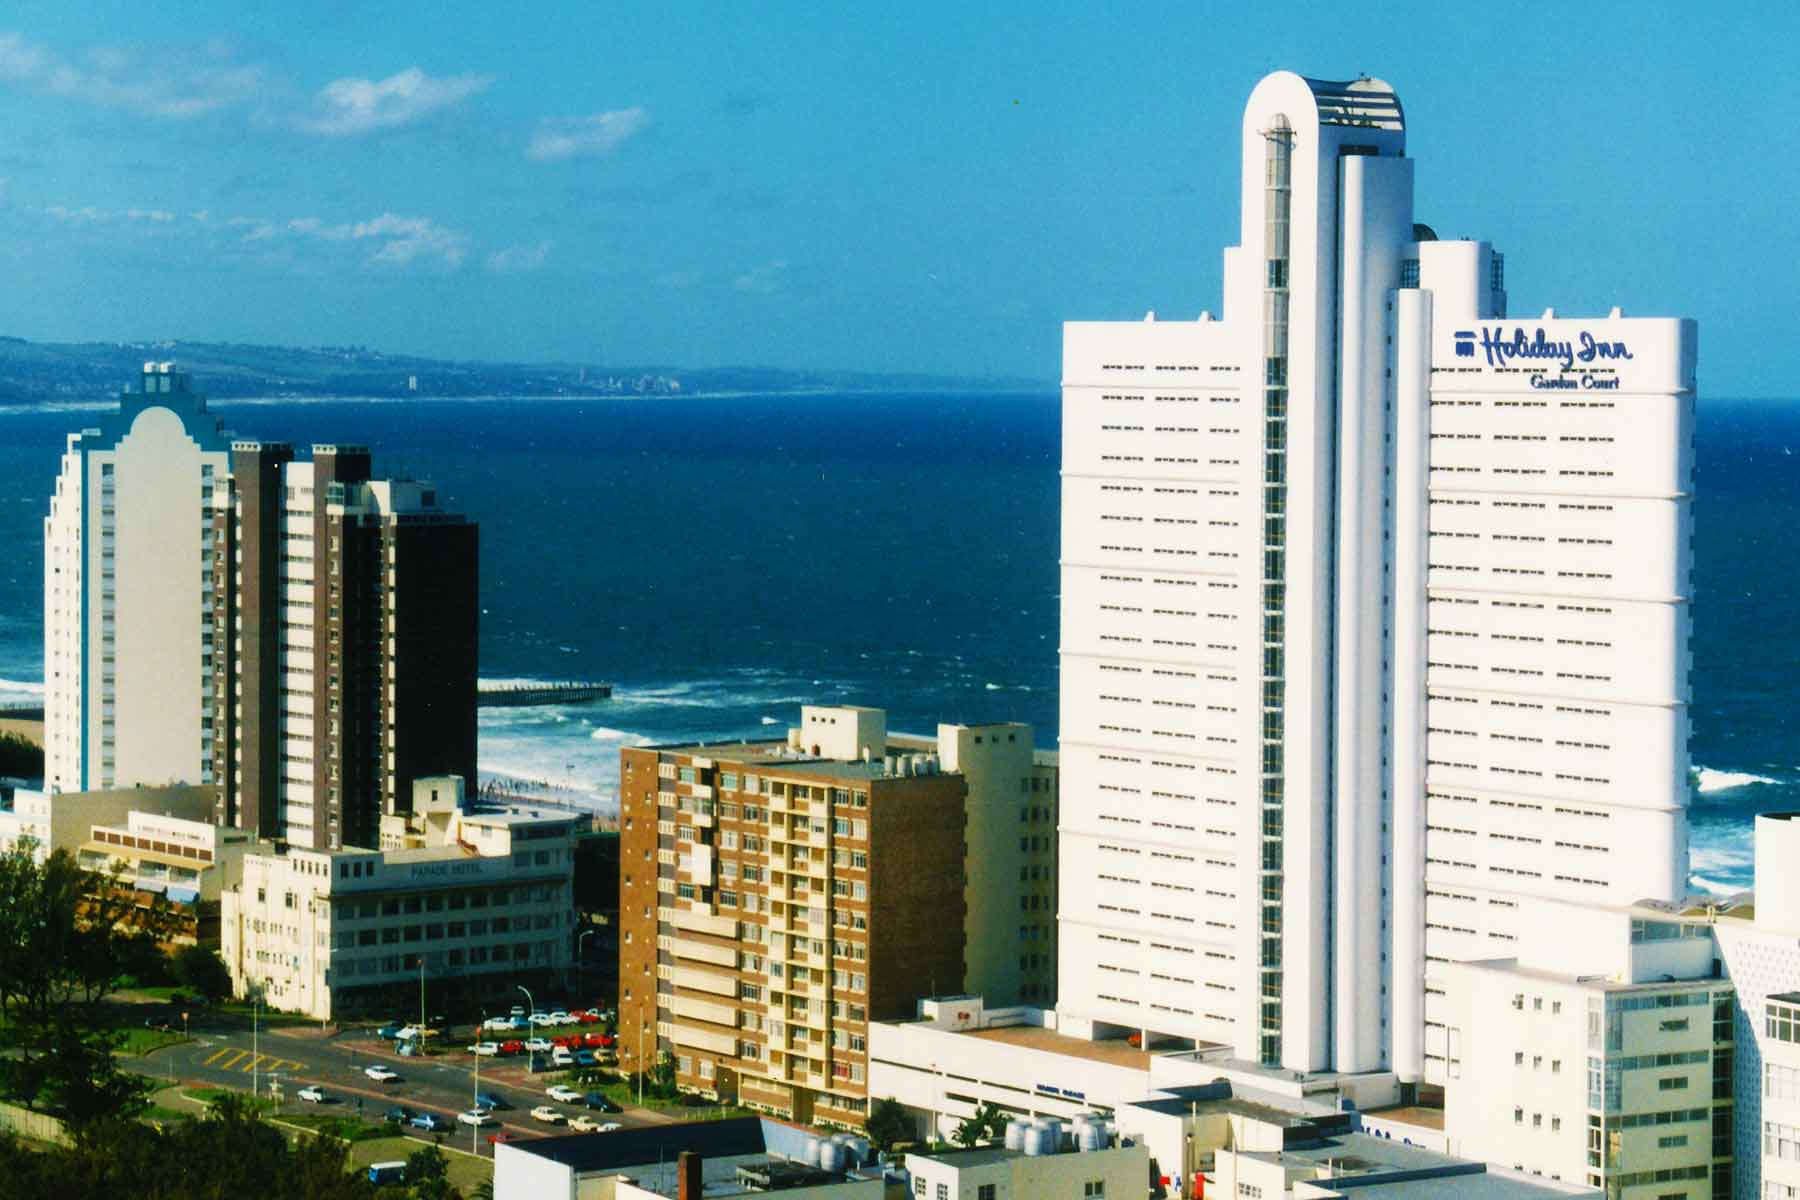 Durban hotels   Steven A. Martin   South Africa   Study Abroad Journal   Dr Steven Andrew Martin